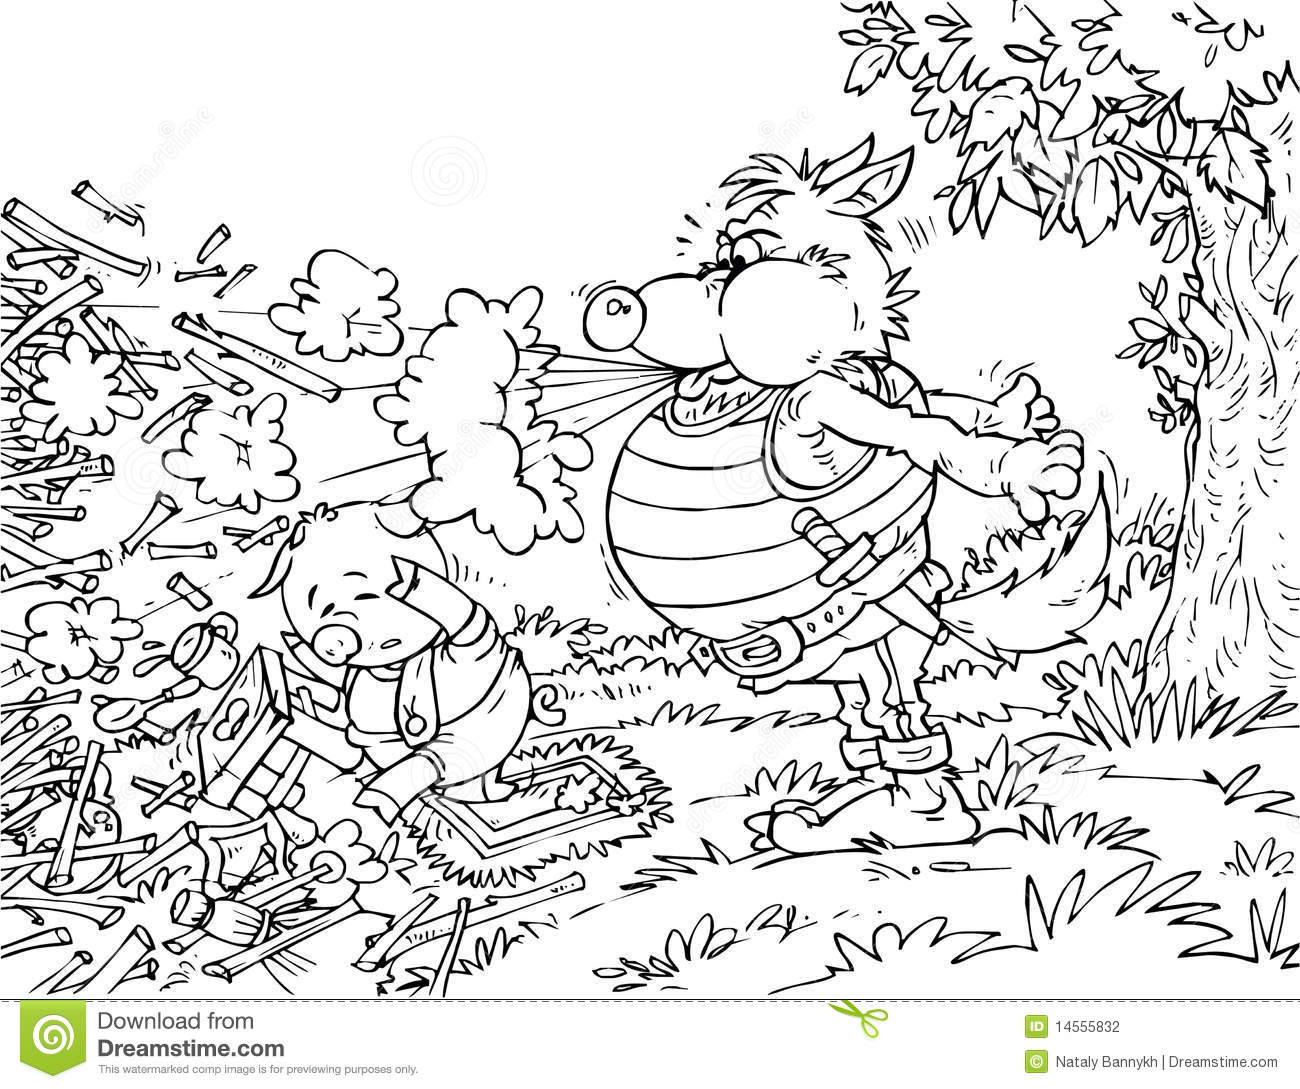 Bad Wolf Three Pigs Colouring Pages